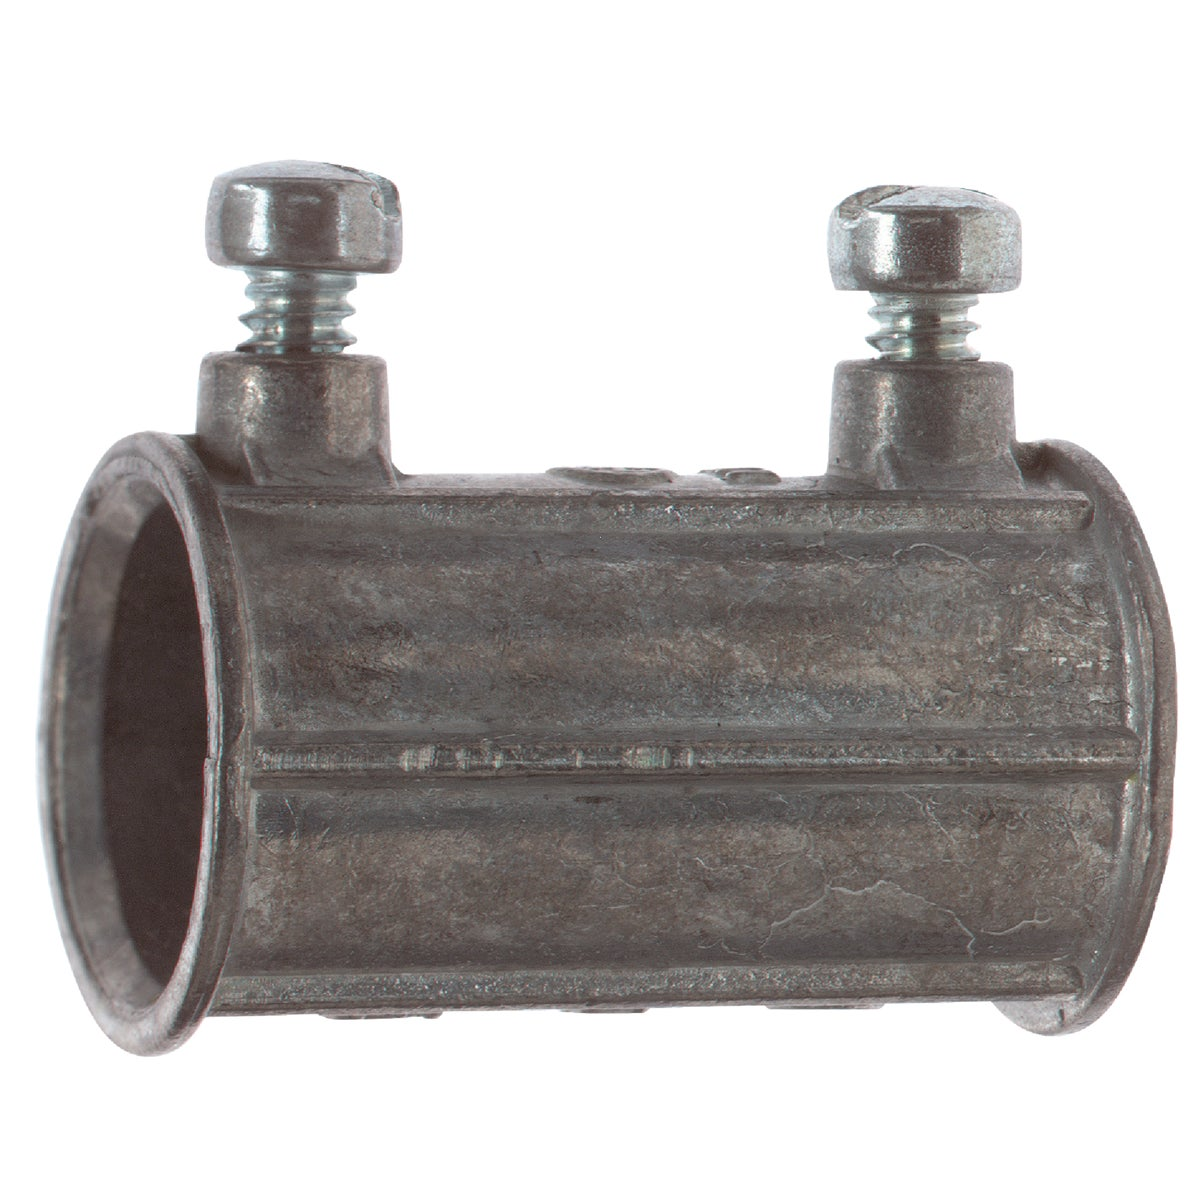 "3/4"" EMT COUPLING - TK222SC1 by Thomas & Betts"